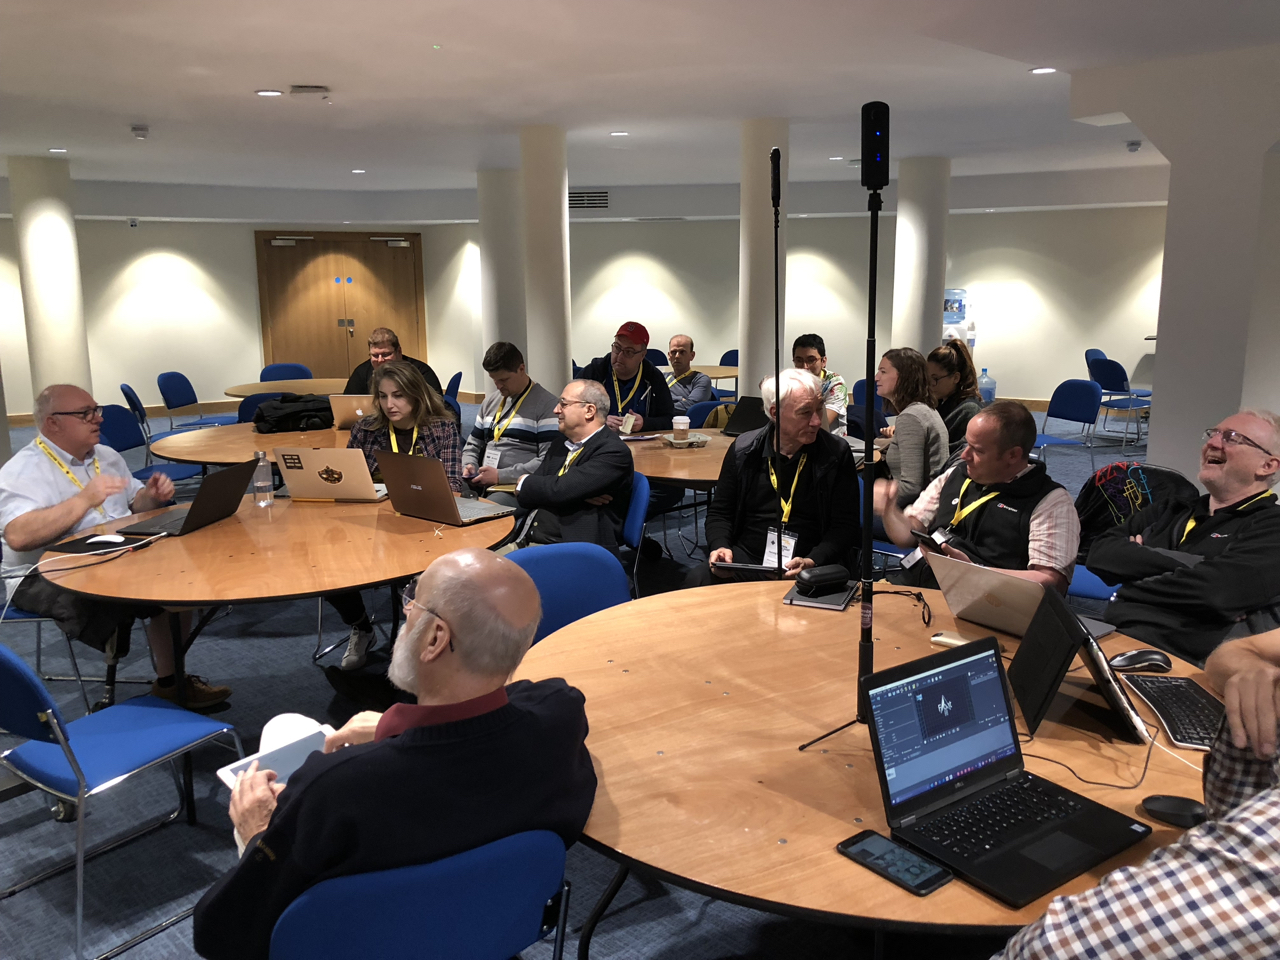 Martin aka Hopki leads a Pano2VR workshop at the IVRPA conference in Belfast.